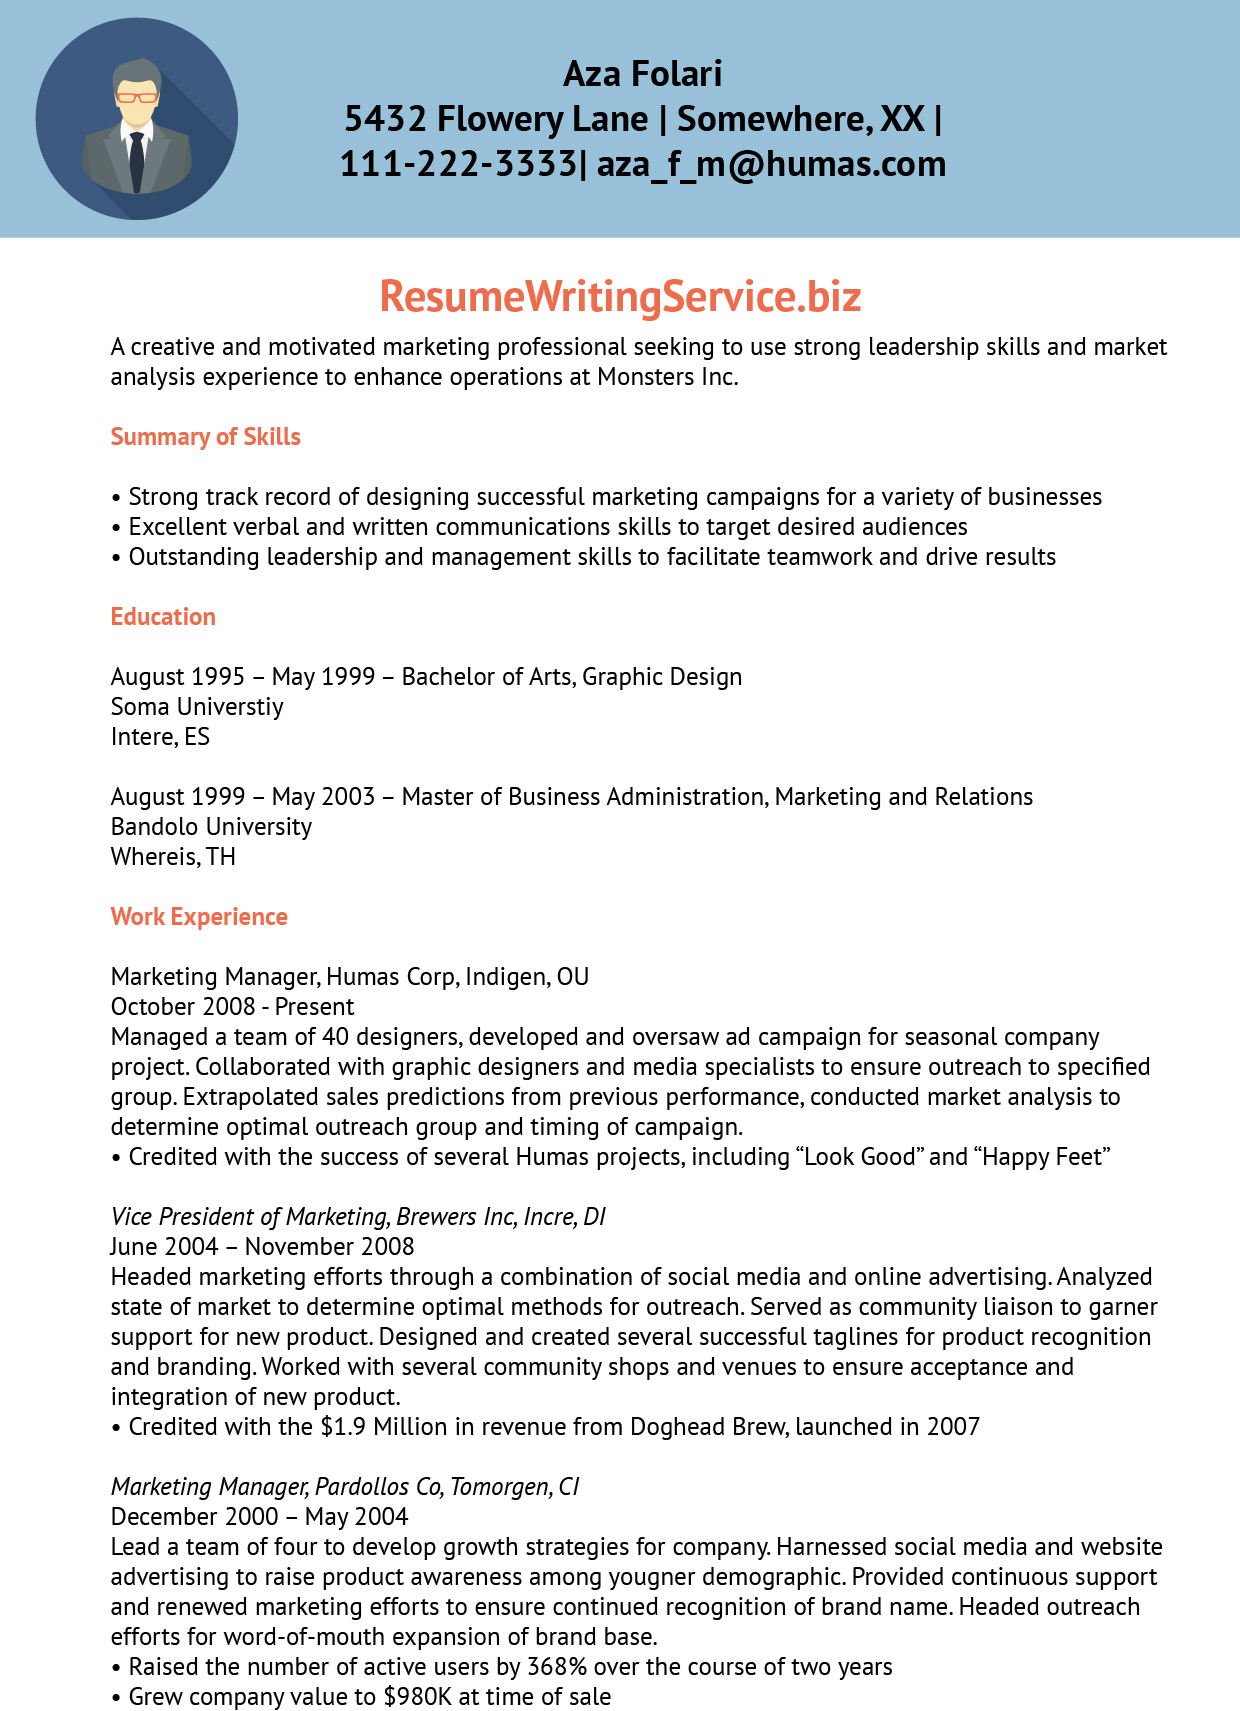 Resume Associate Marketing Manager Resume marketing manager resume samples channel s web professional writing edmonton builder services top 5 professional